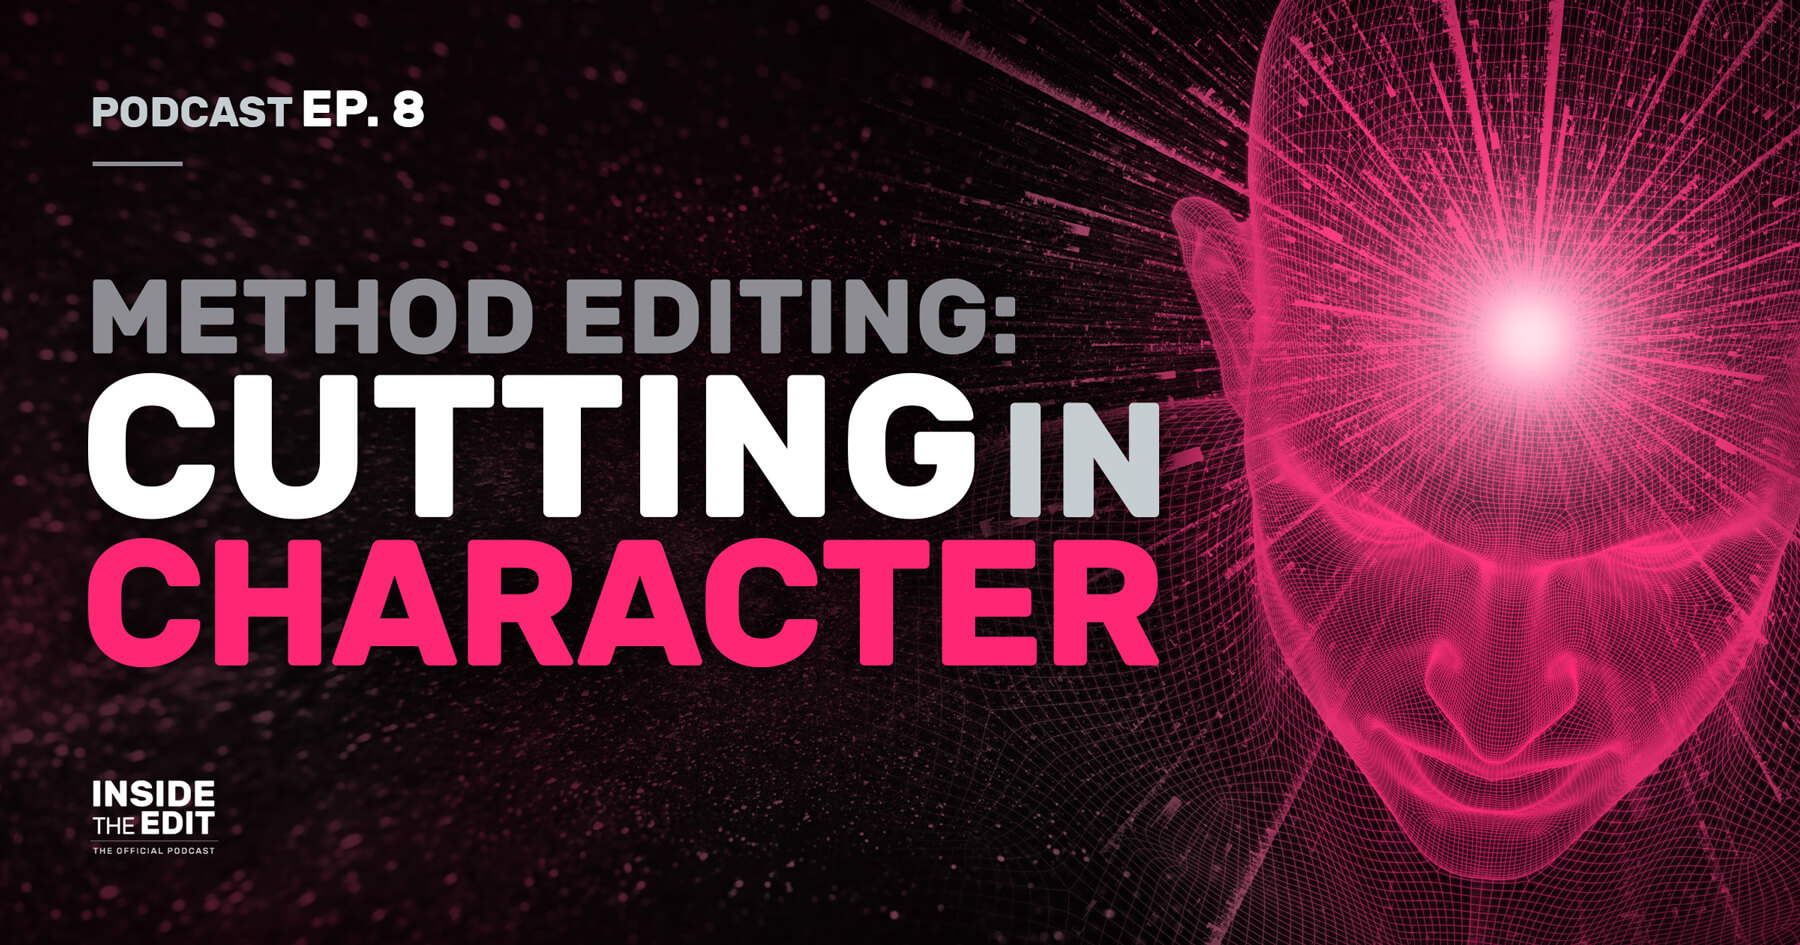 Method Editing: Cutting in Character